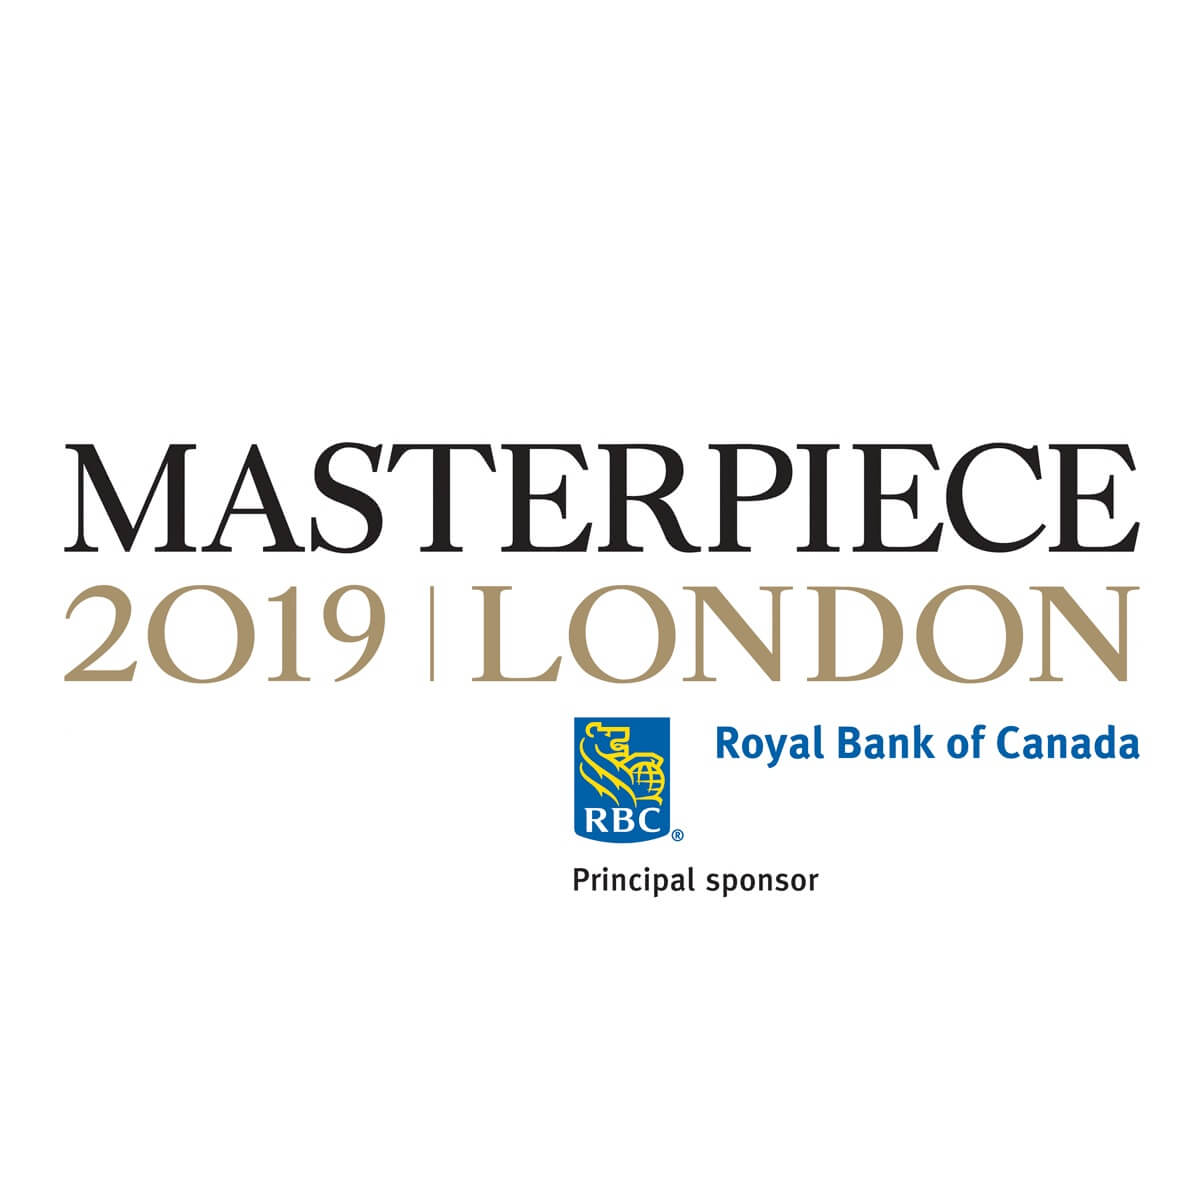 Masterpiece London 2019